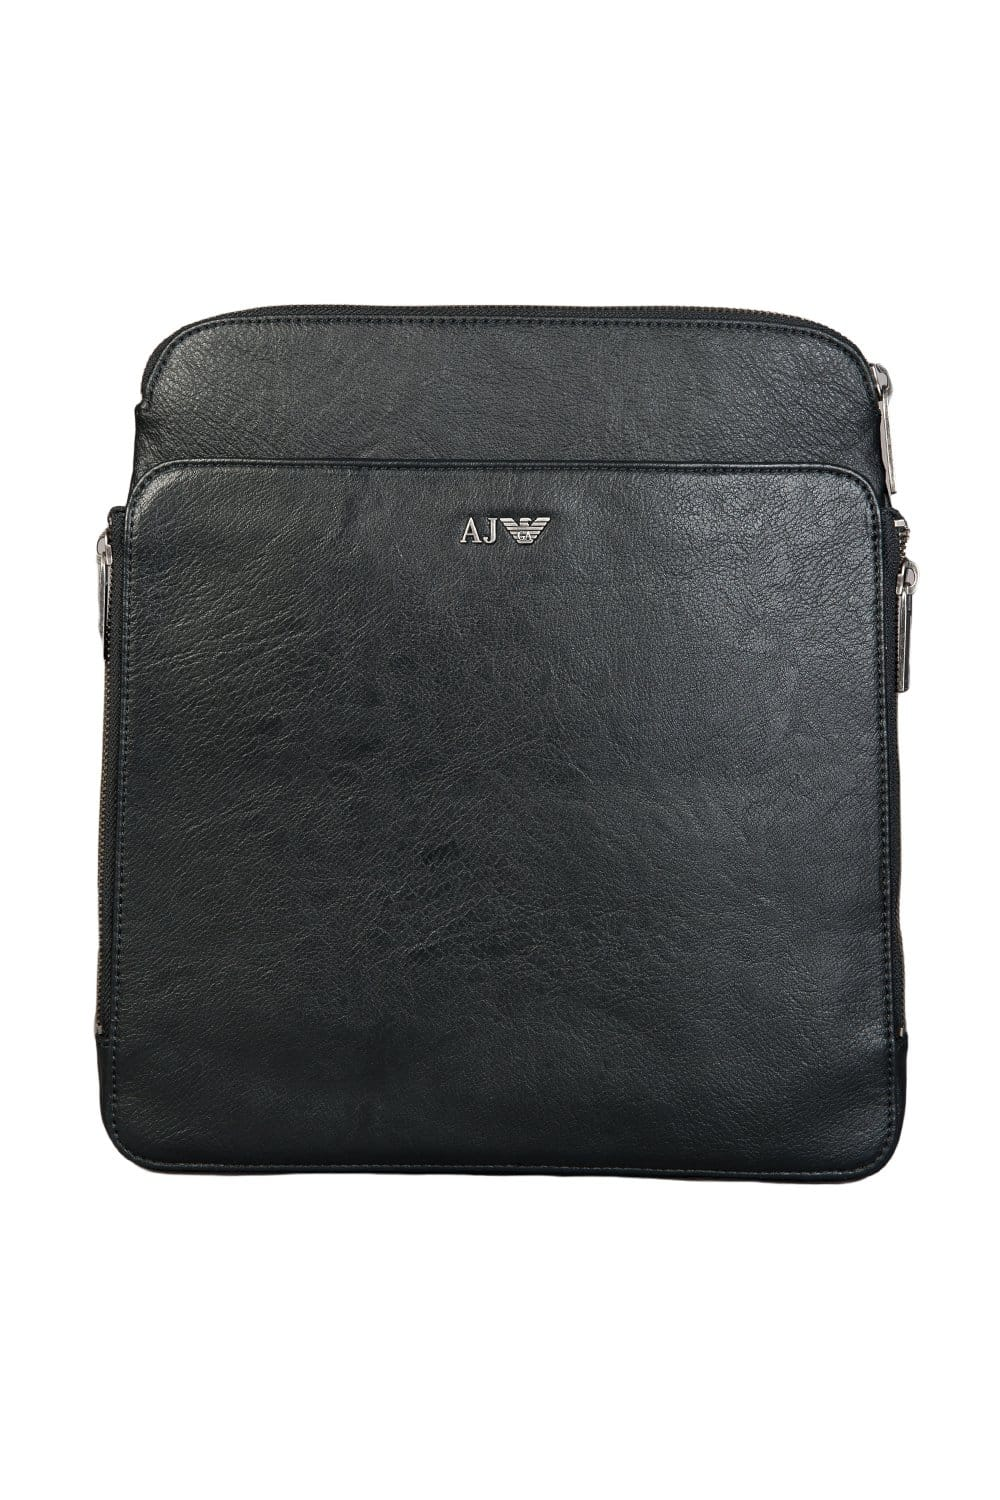 054adf0473cf Armani Jeans Faux Leather Messenger Bag B6251S6 - Accessories from Sage  Clothing UK